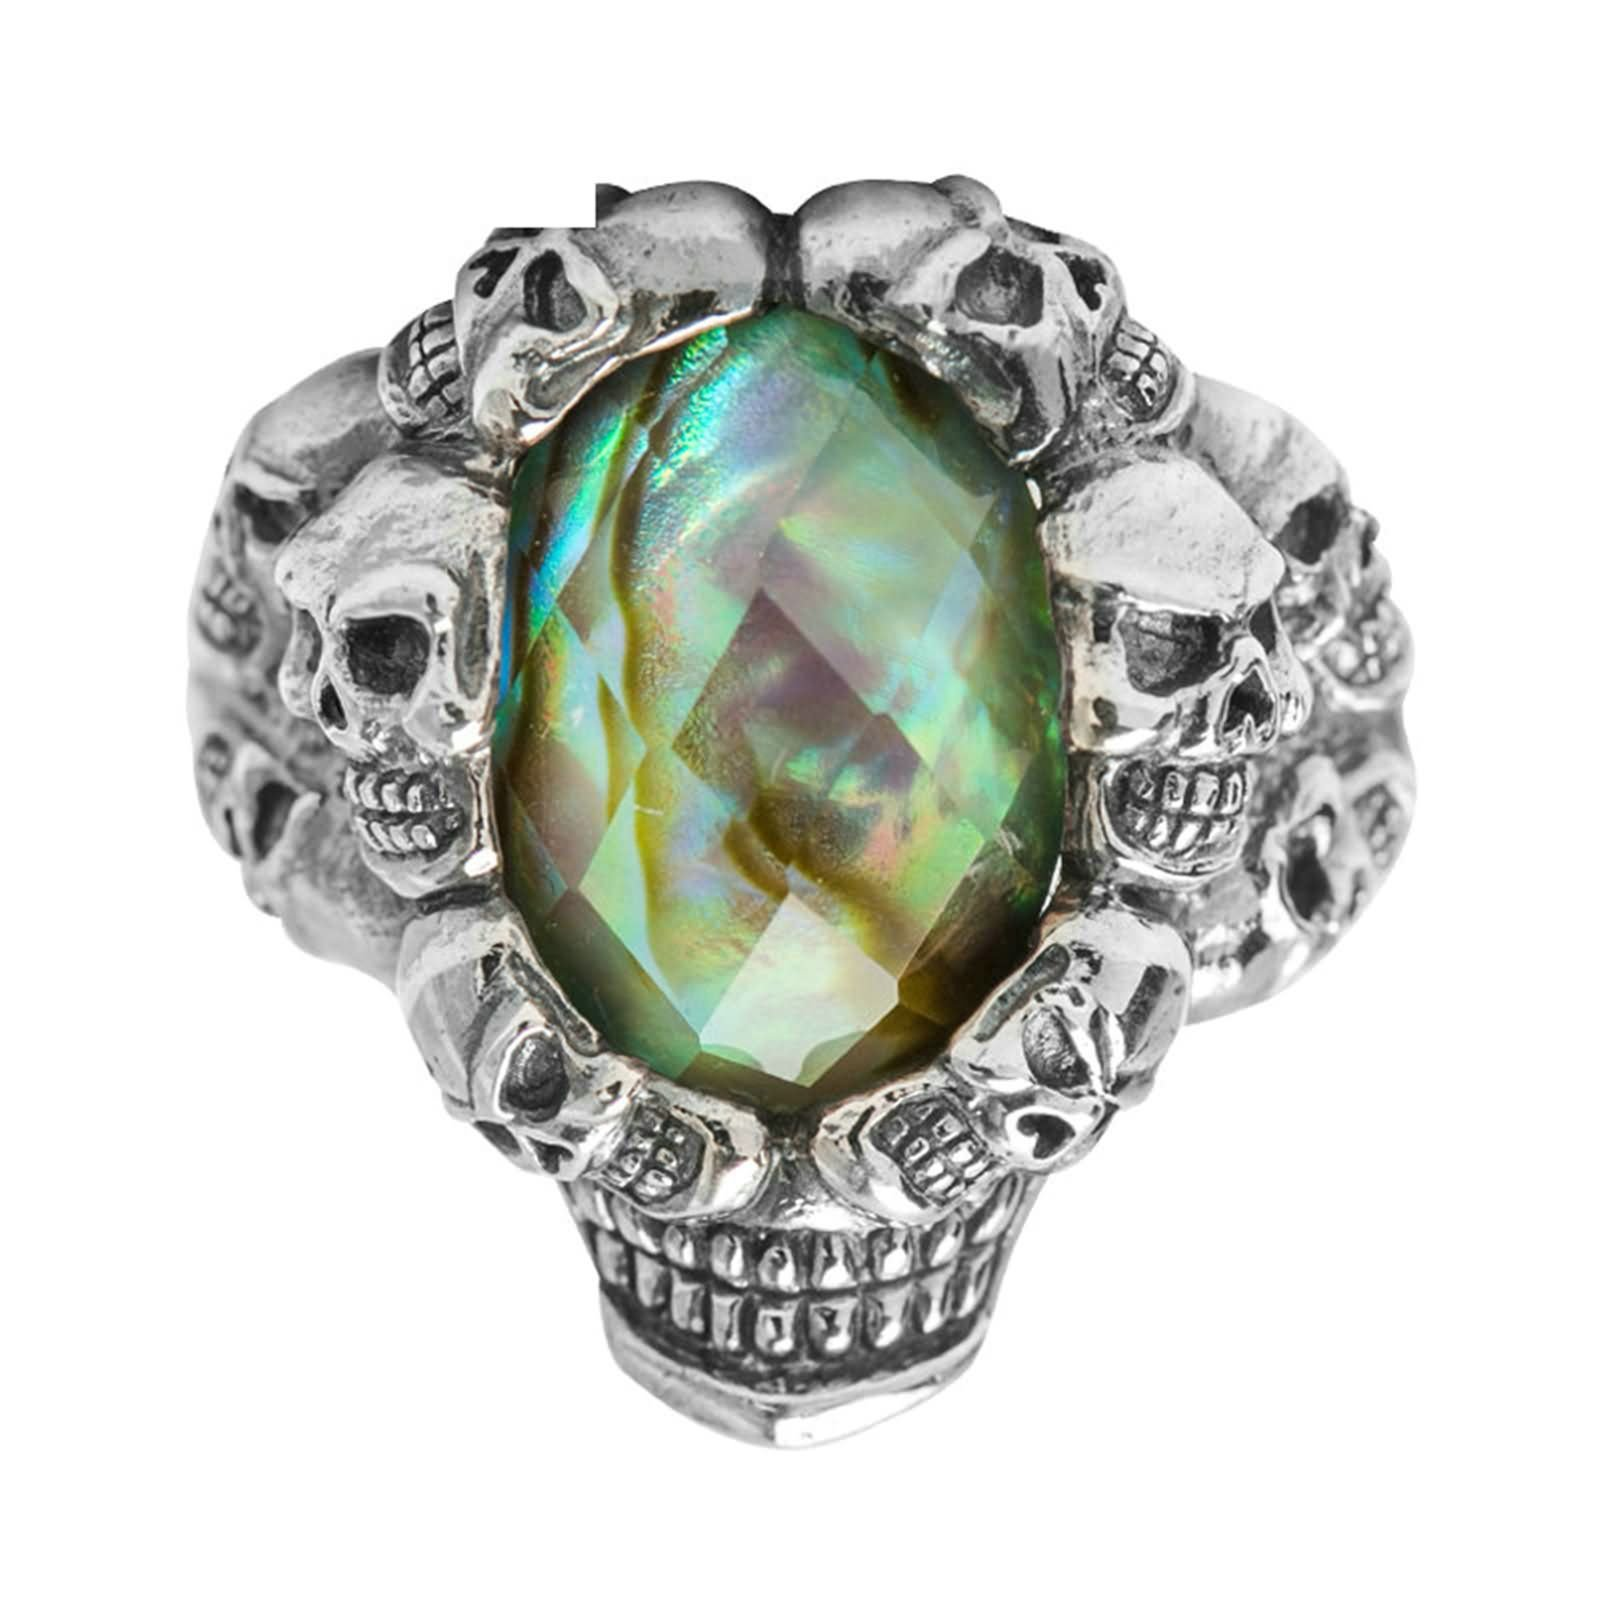 Bishilin Silver Plated Rings for Men with Colorful Stone Skull Friendship Rings Silver Size 12.5